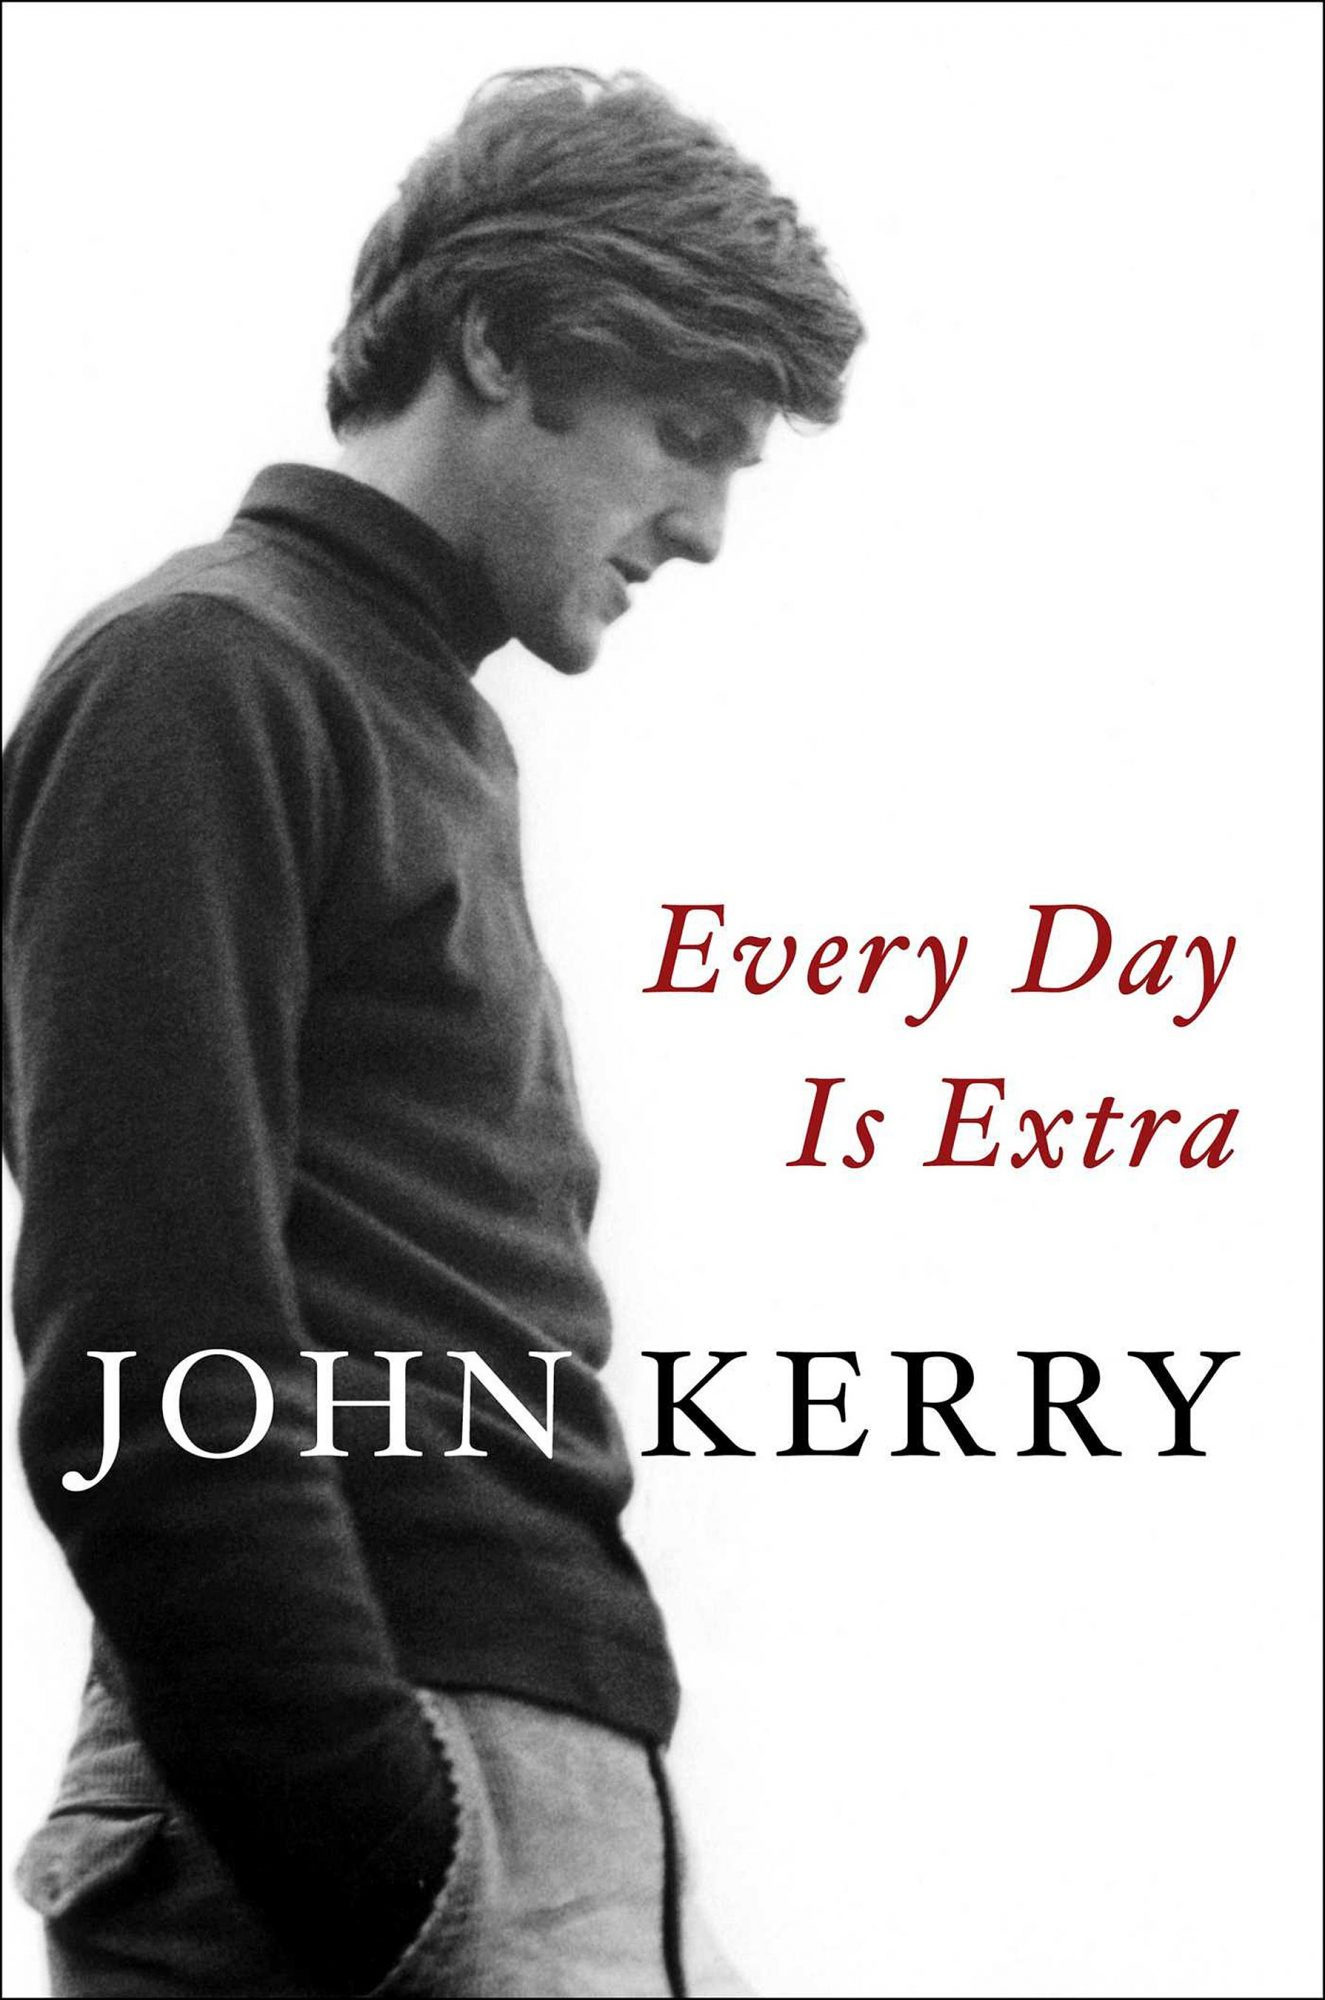 Every Day Is Extra John KerryCredit: Simon and Schuster